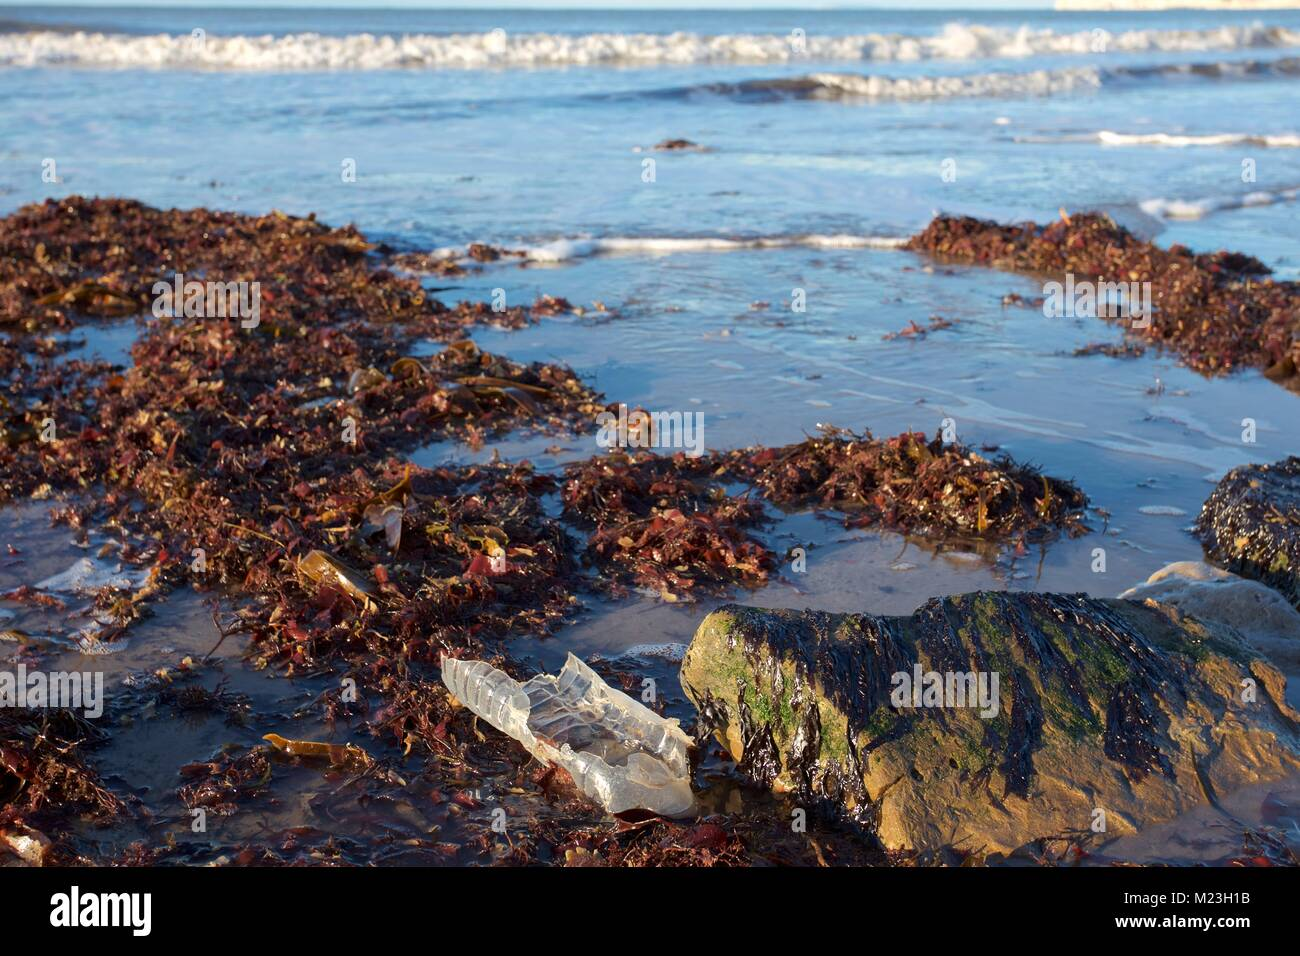 plastic bottles washed up on beach - Stock Image